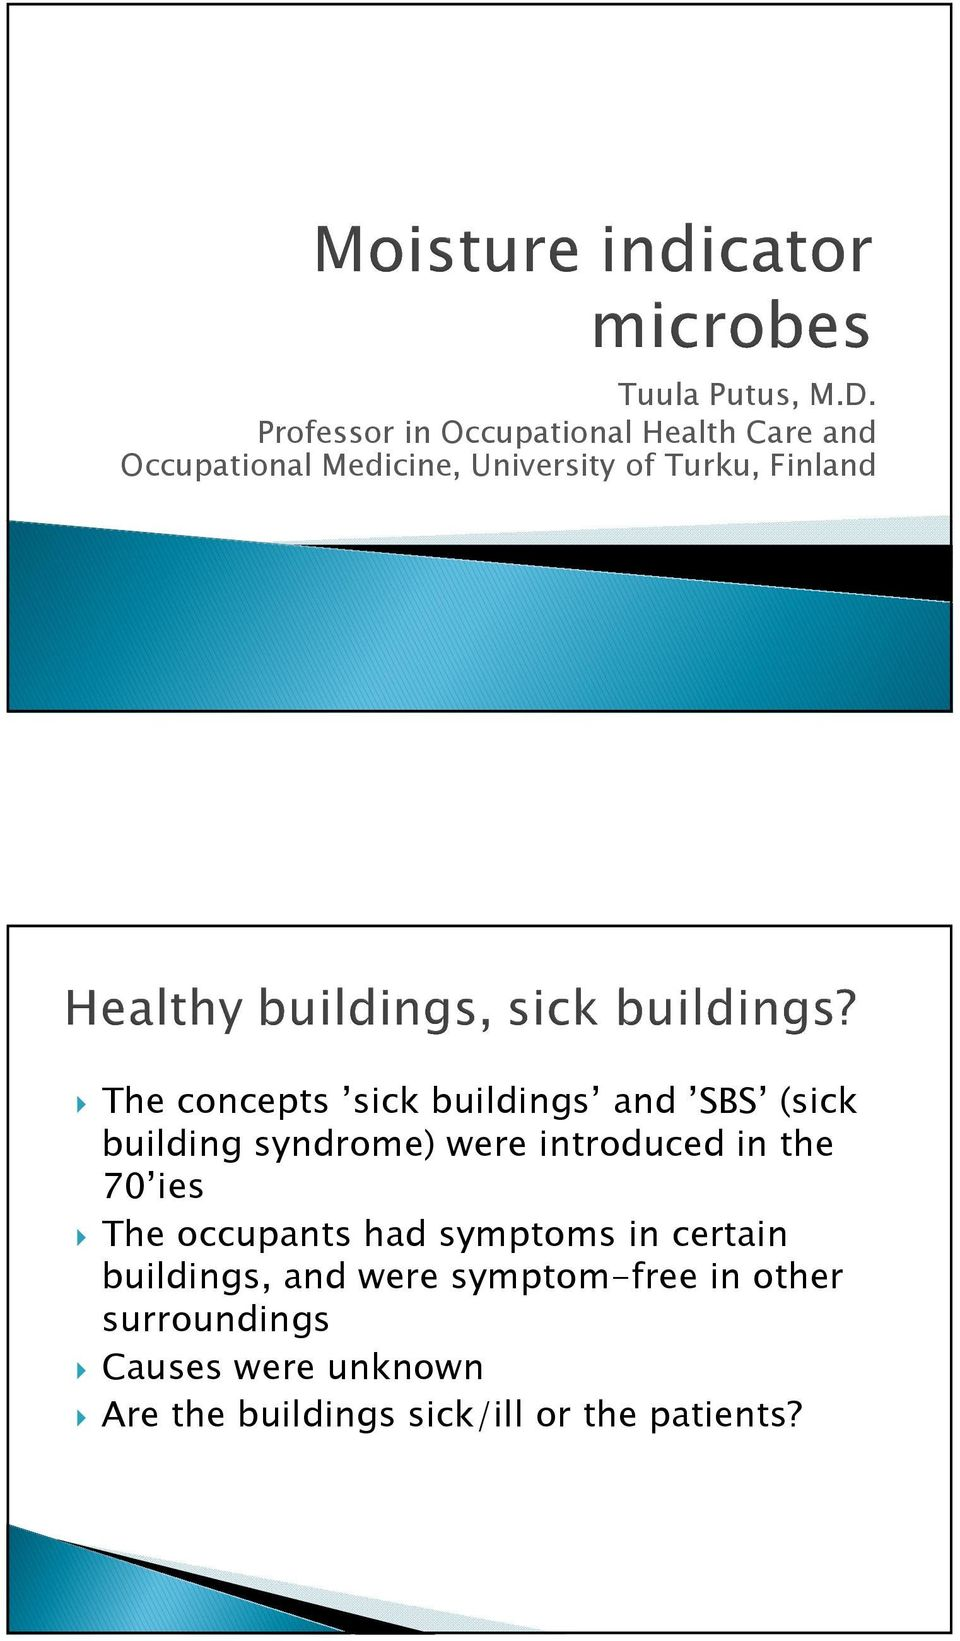 Finland The concepts sick buildings and SBS (sick building syndrome) were introduced in